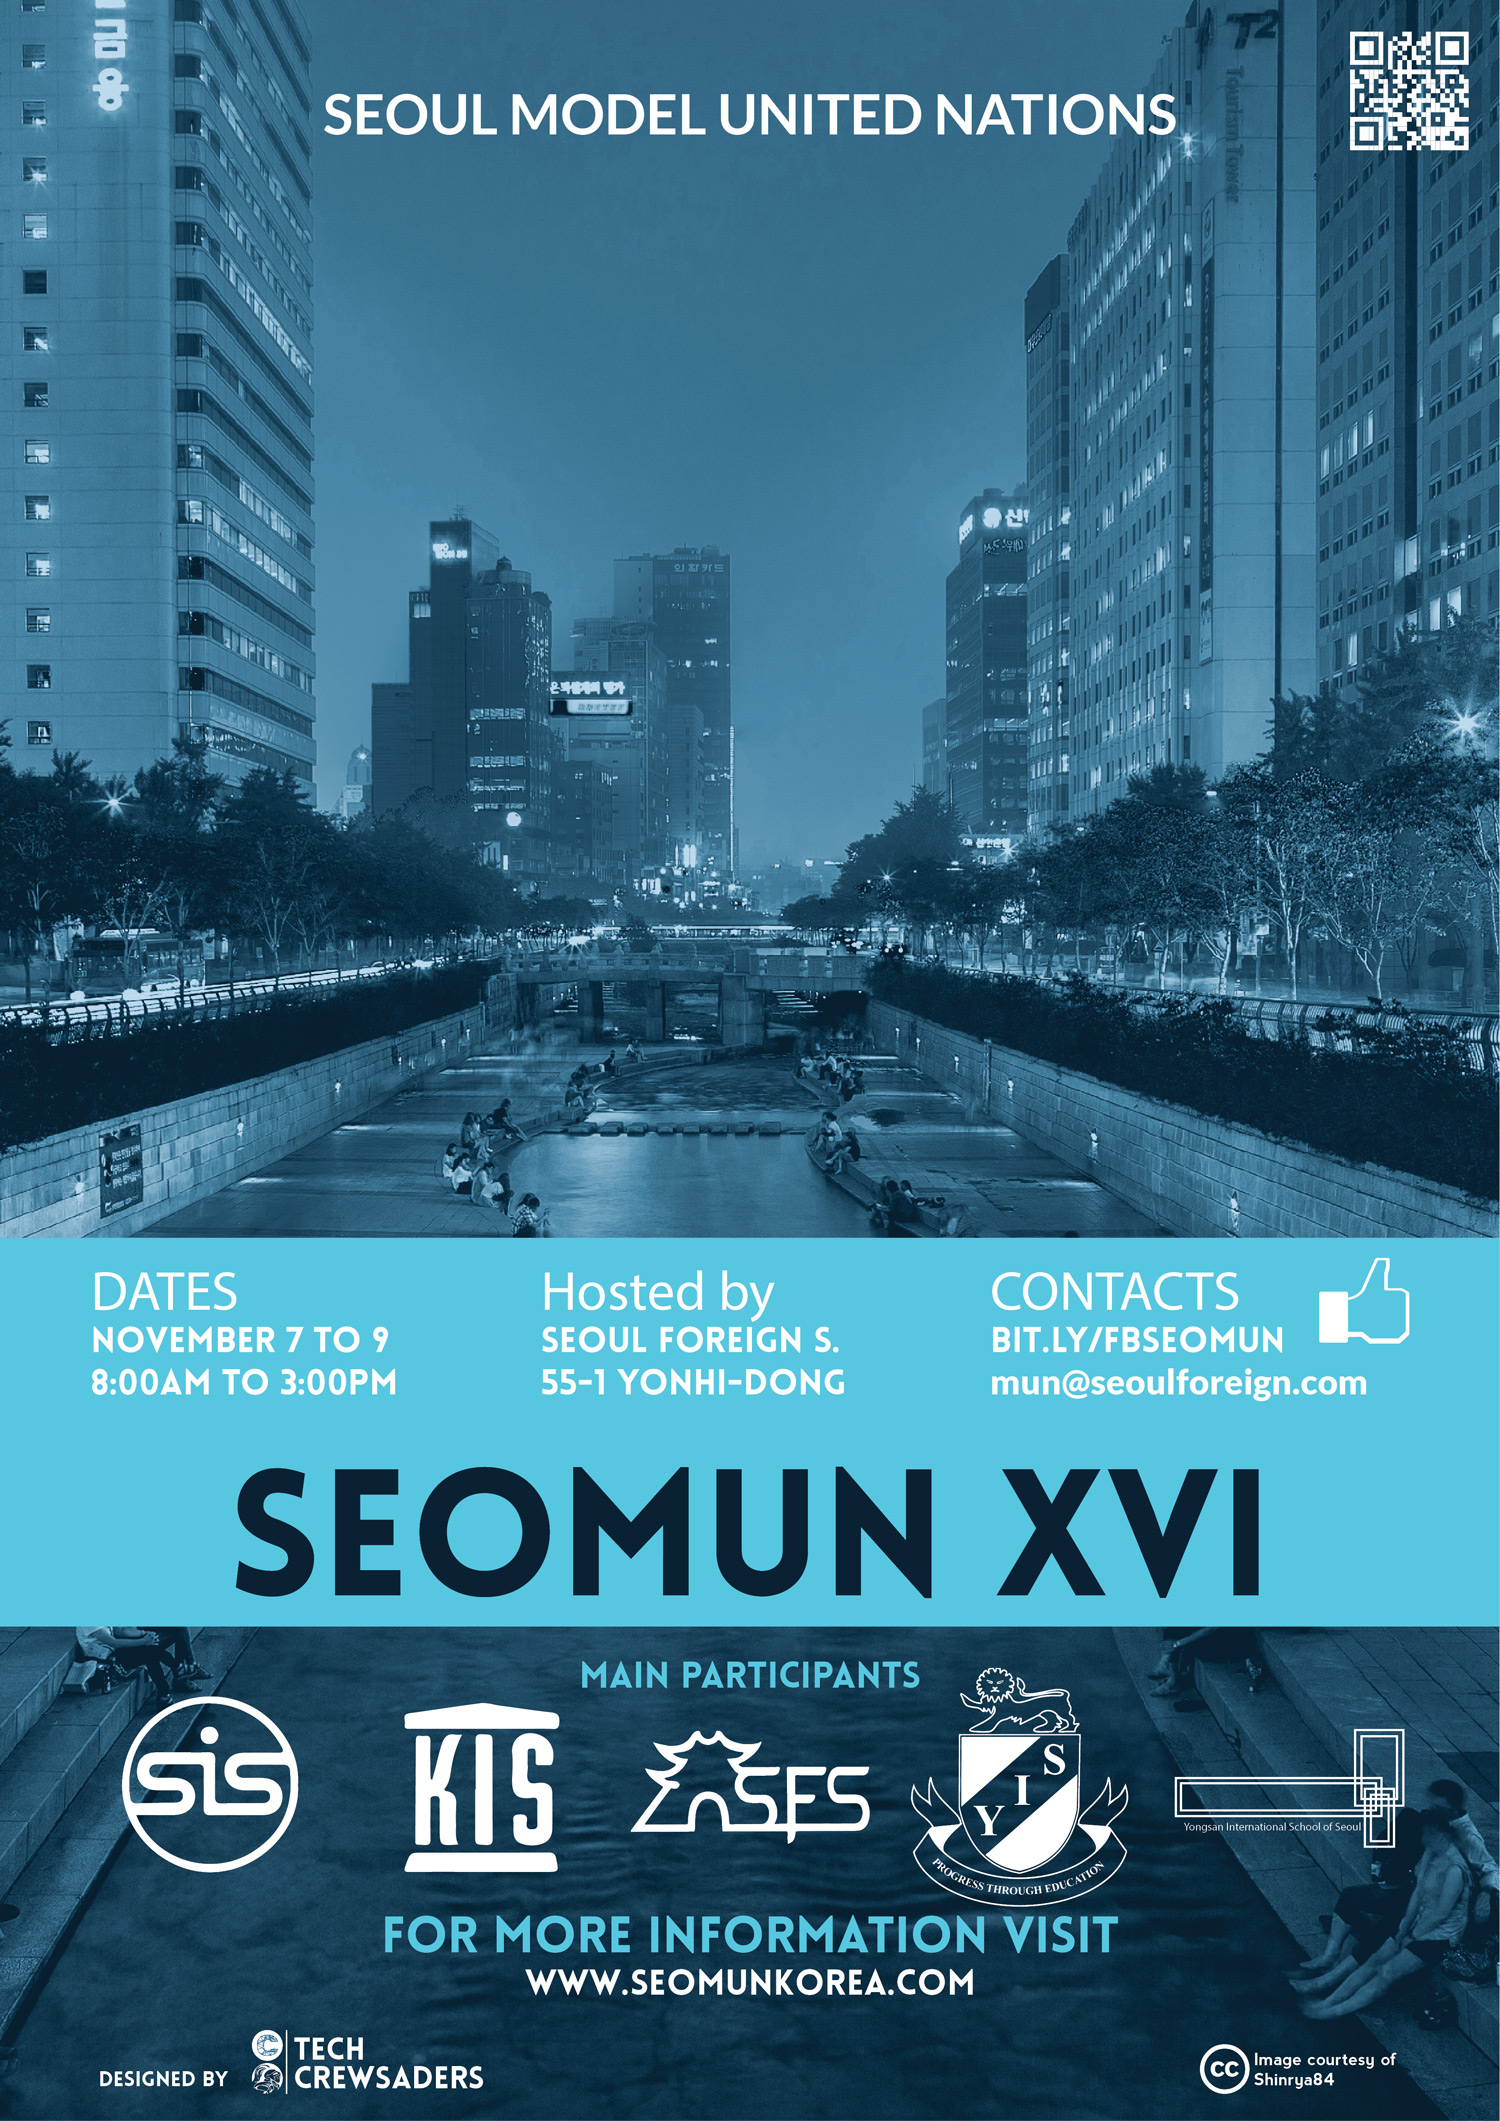 Seoul Model United Nations Poster (2013)